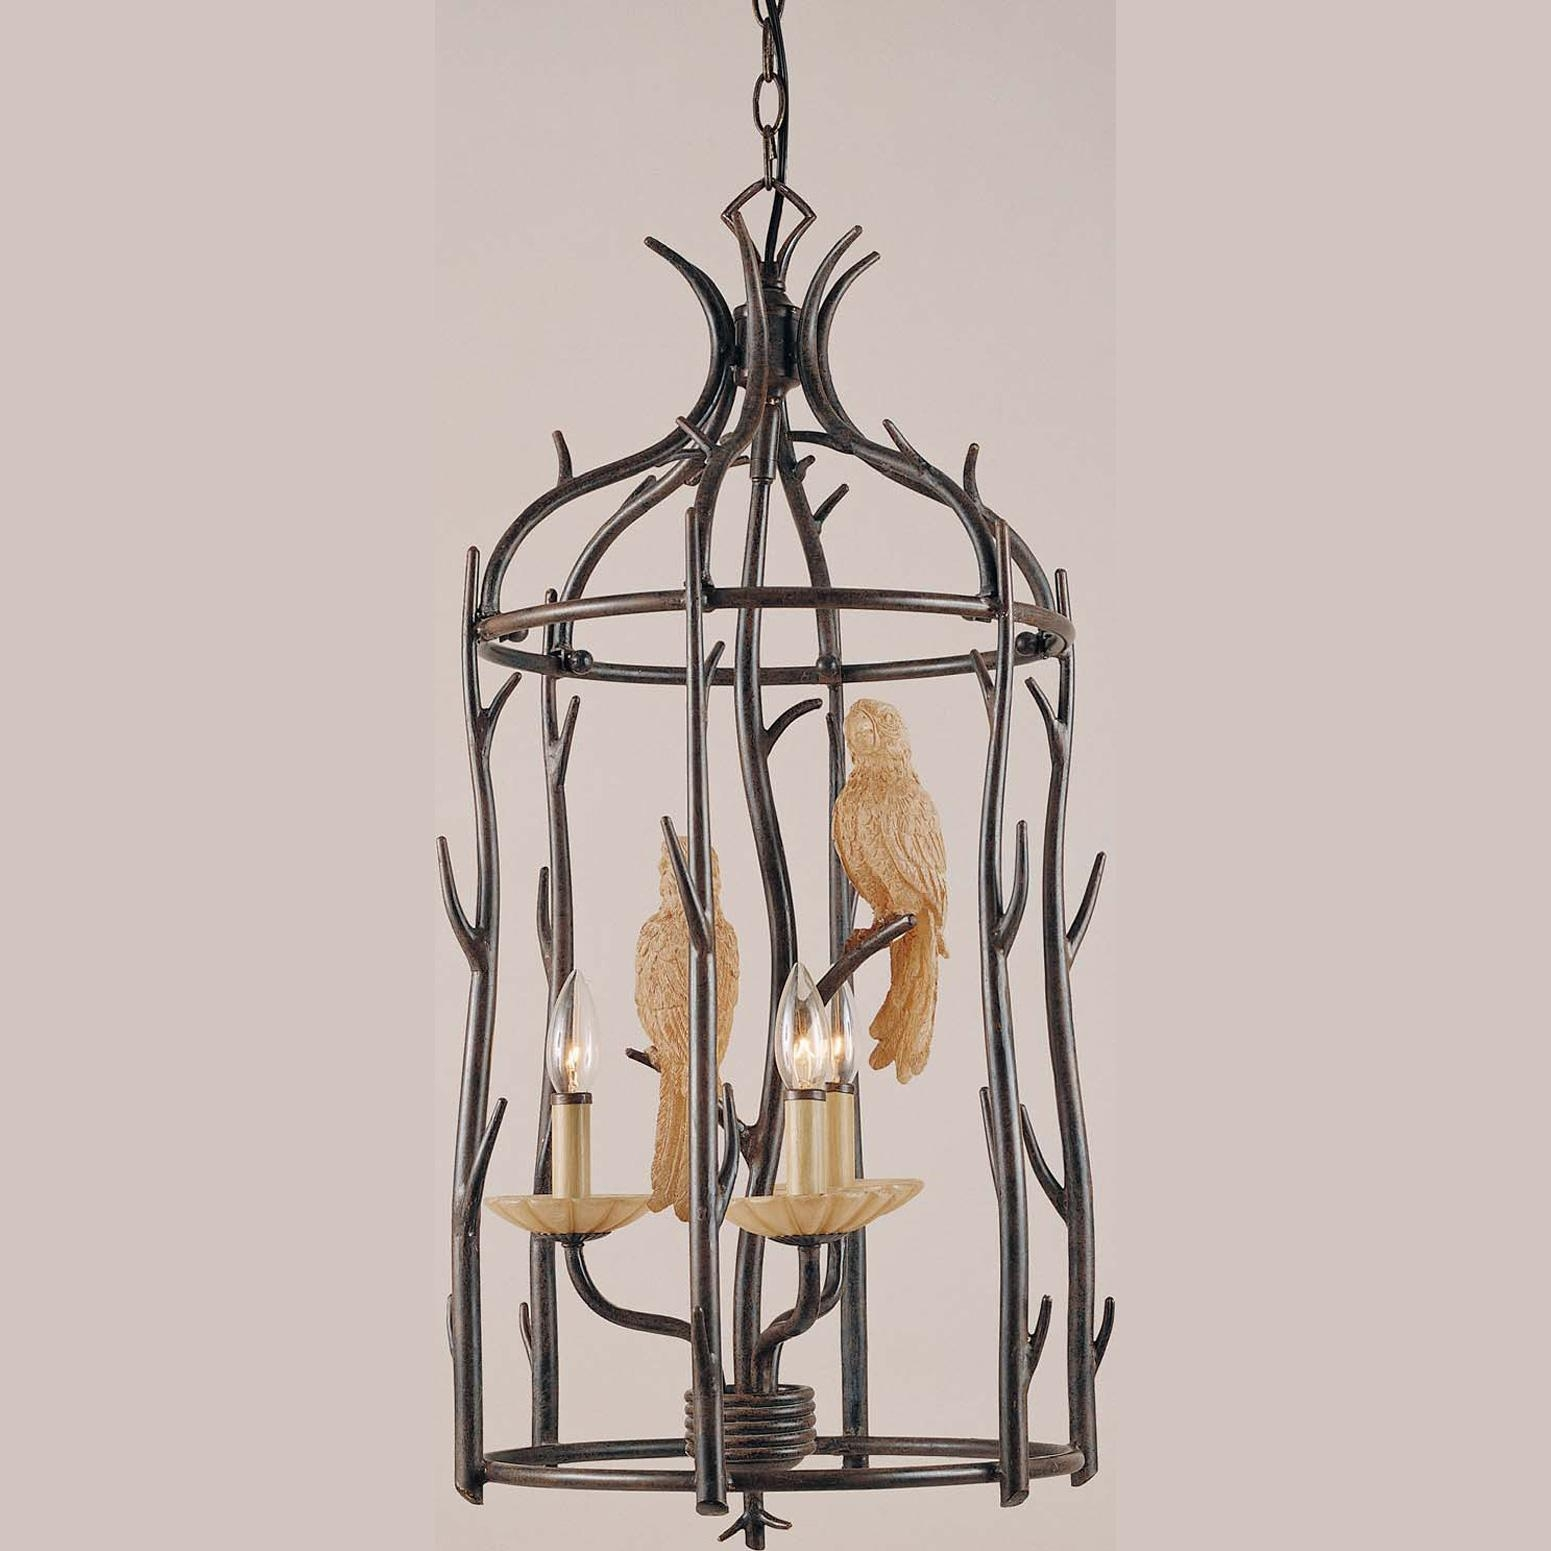 Aviary 3 Light Aged Driftwood Chandelier Free Shipping Today Intended For Lucinda Branch Chandelier (View 12 of 15)